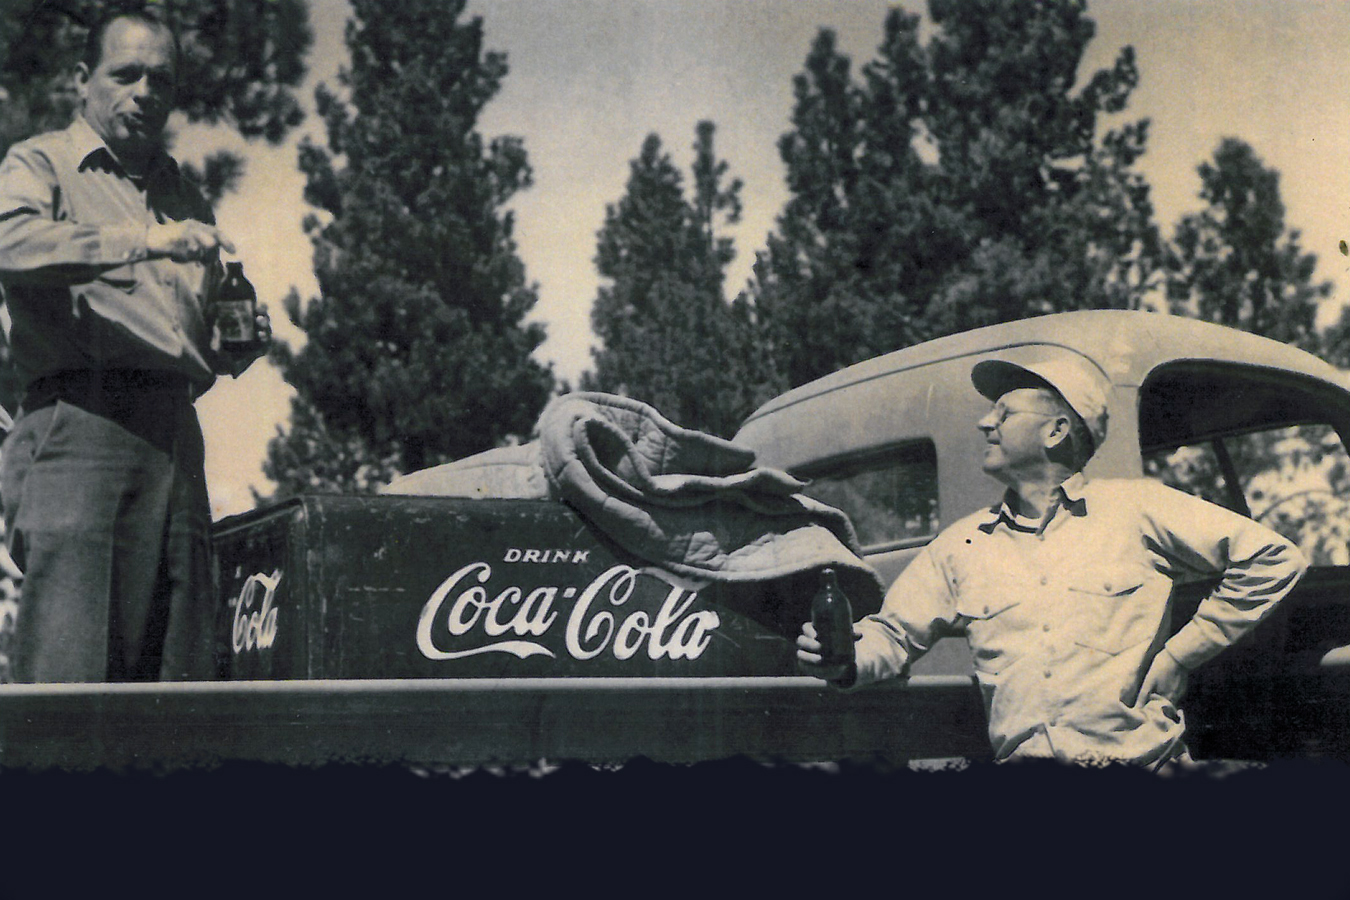 In appreciation of the grounds crew, members often delivered ice-cold Cokes on hot summer days.